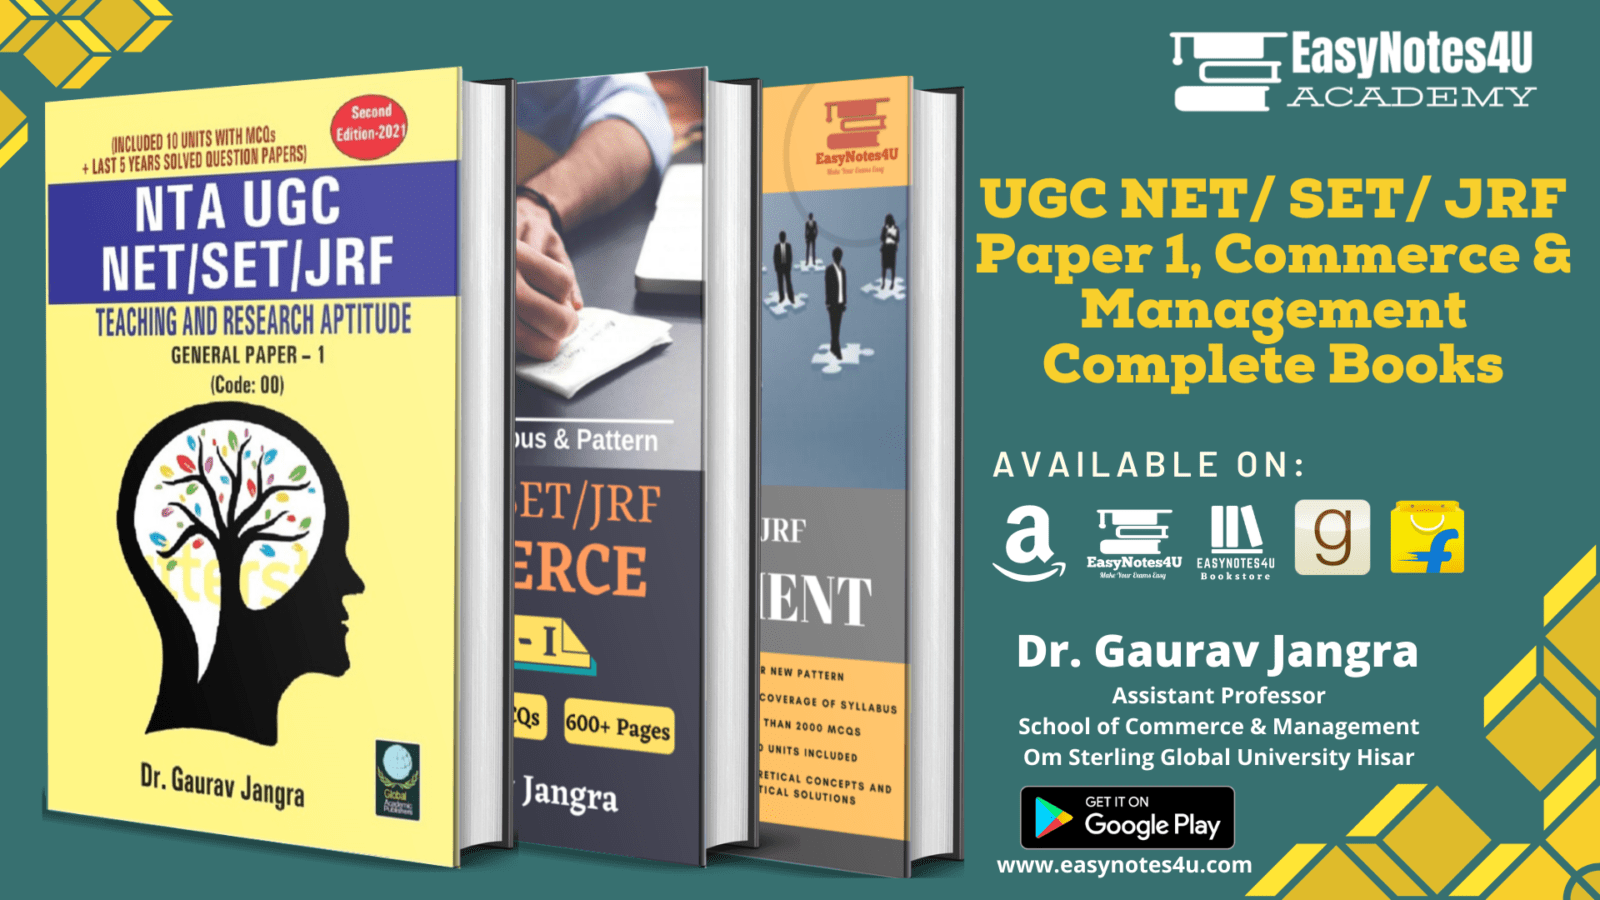 UGC NET Management eBooks Commerce, paper 1, Management Book, ebook, pdf notes and study material